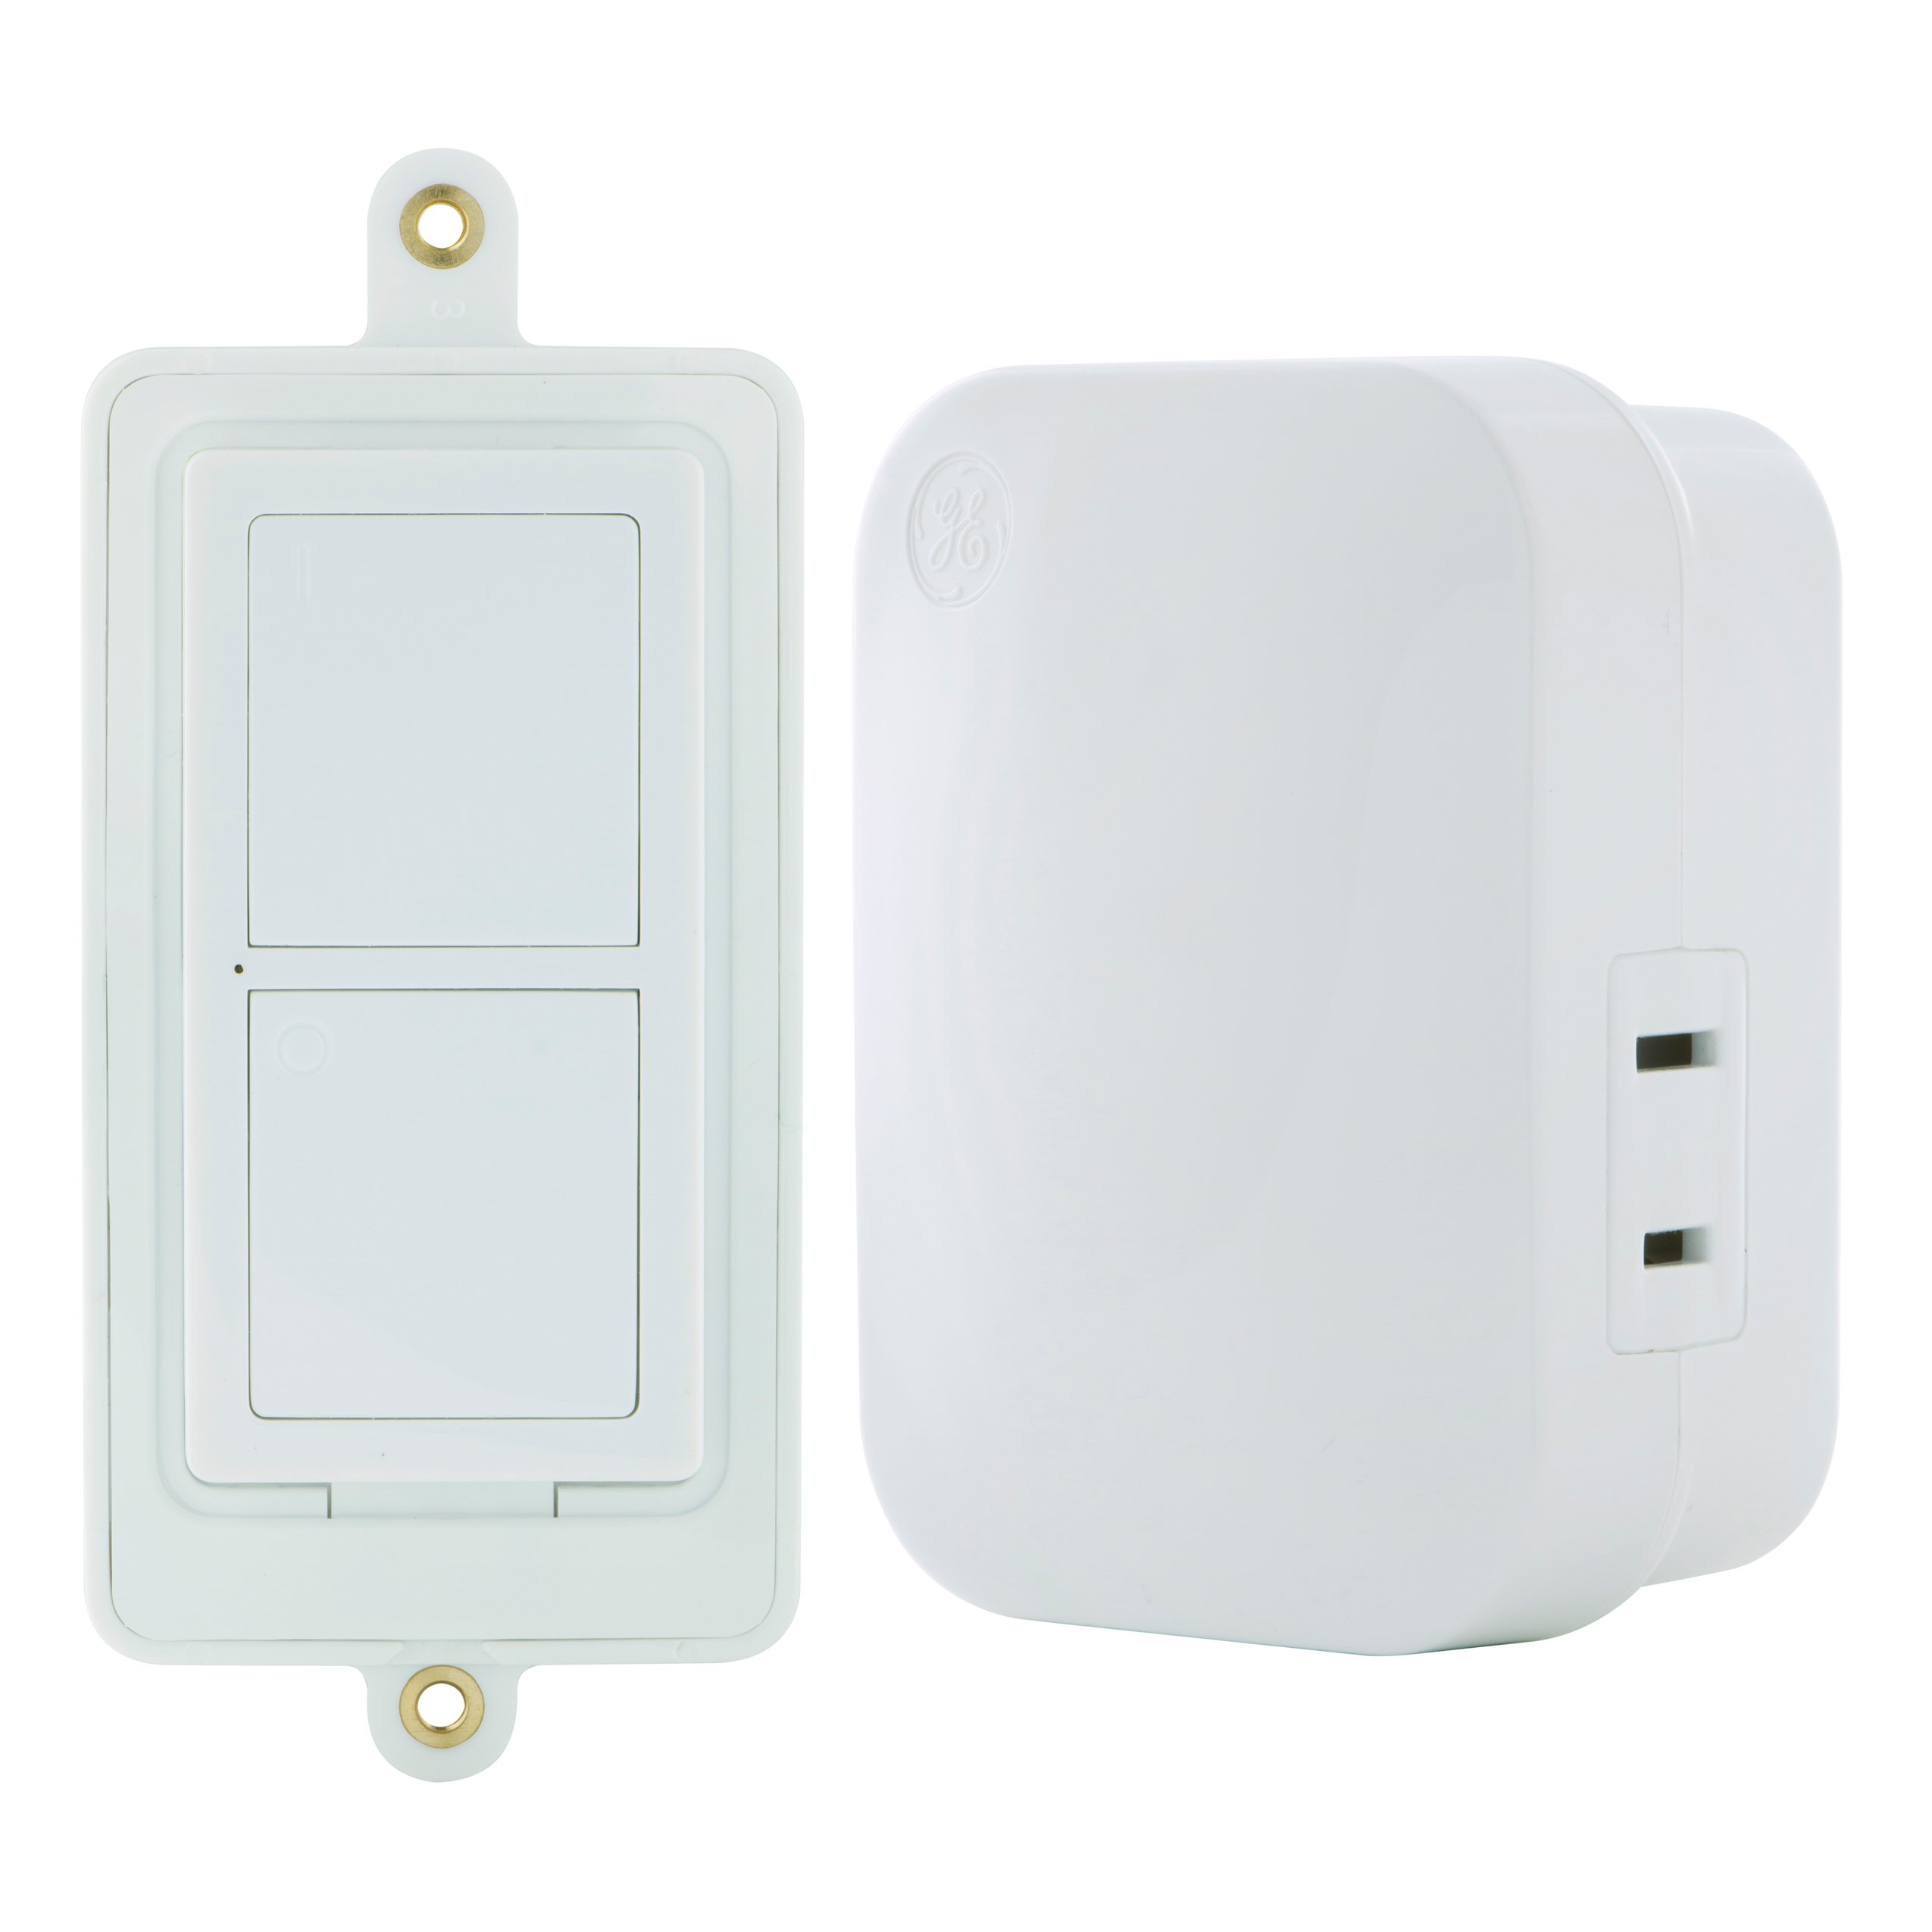 Ge Myselectsmart Wireless Remote Control Light Switch On Off 1 No Wiring Lighting Outlet 150